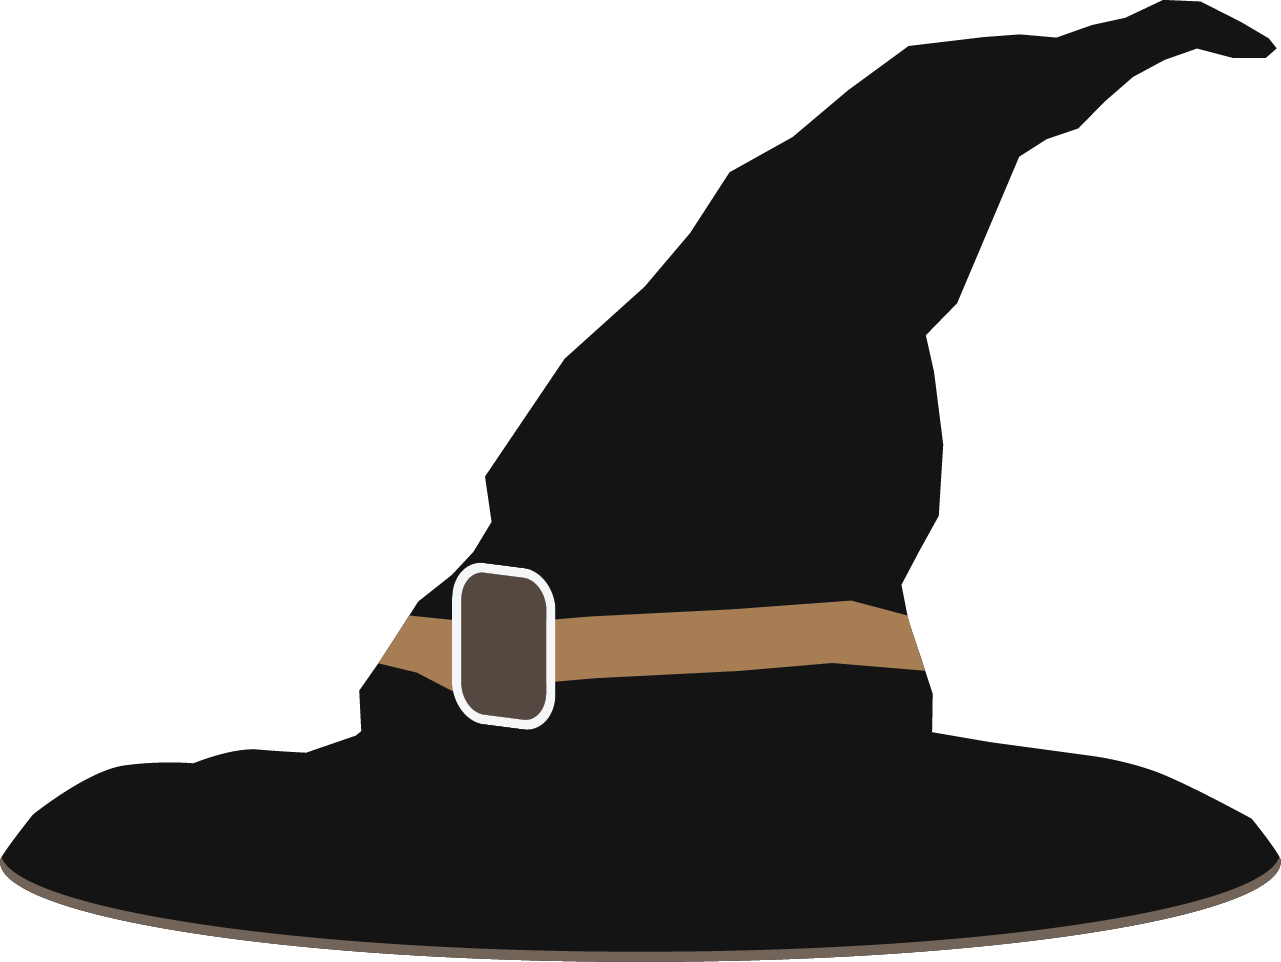 Free Black Witch Hat Clip Art-Free Black Witch Hat Clip Art-15